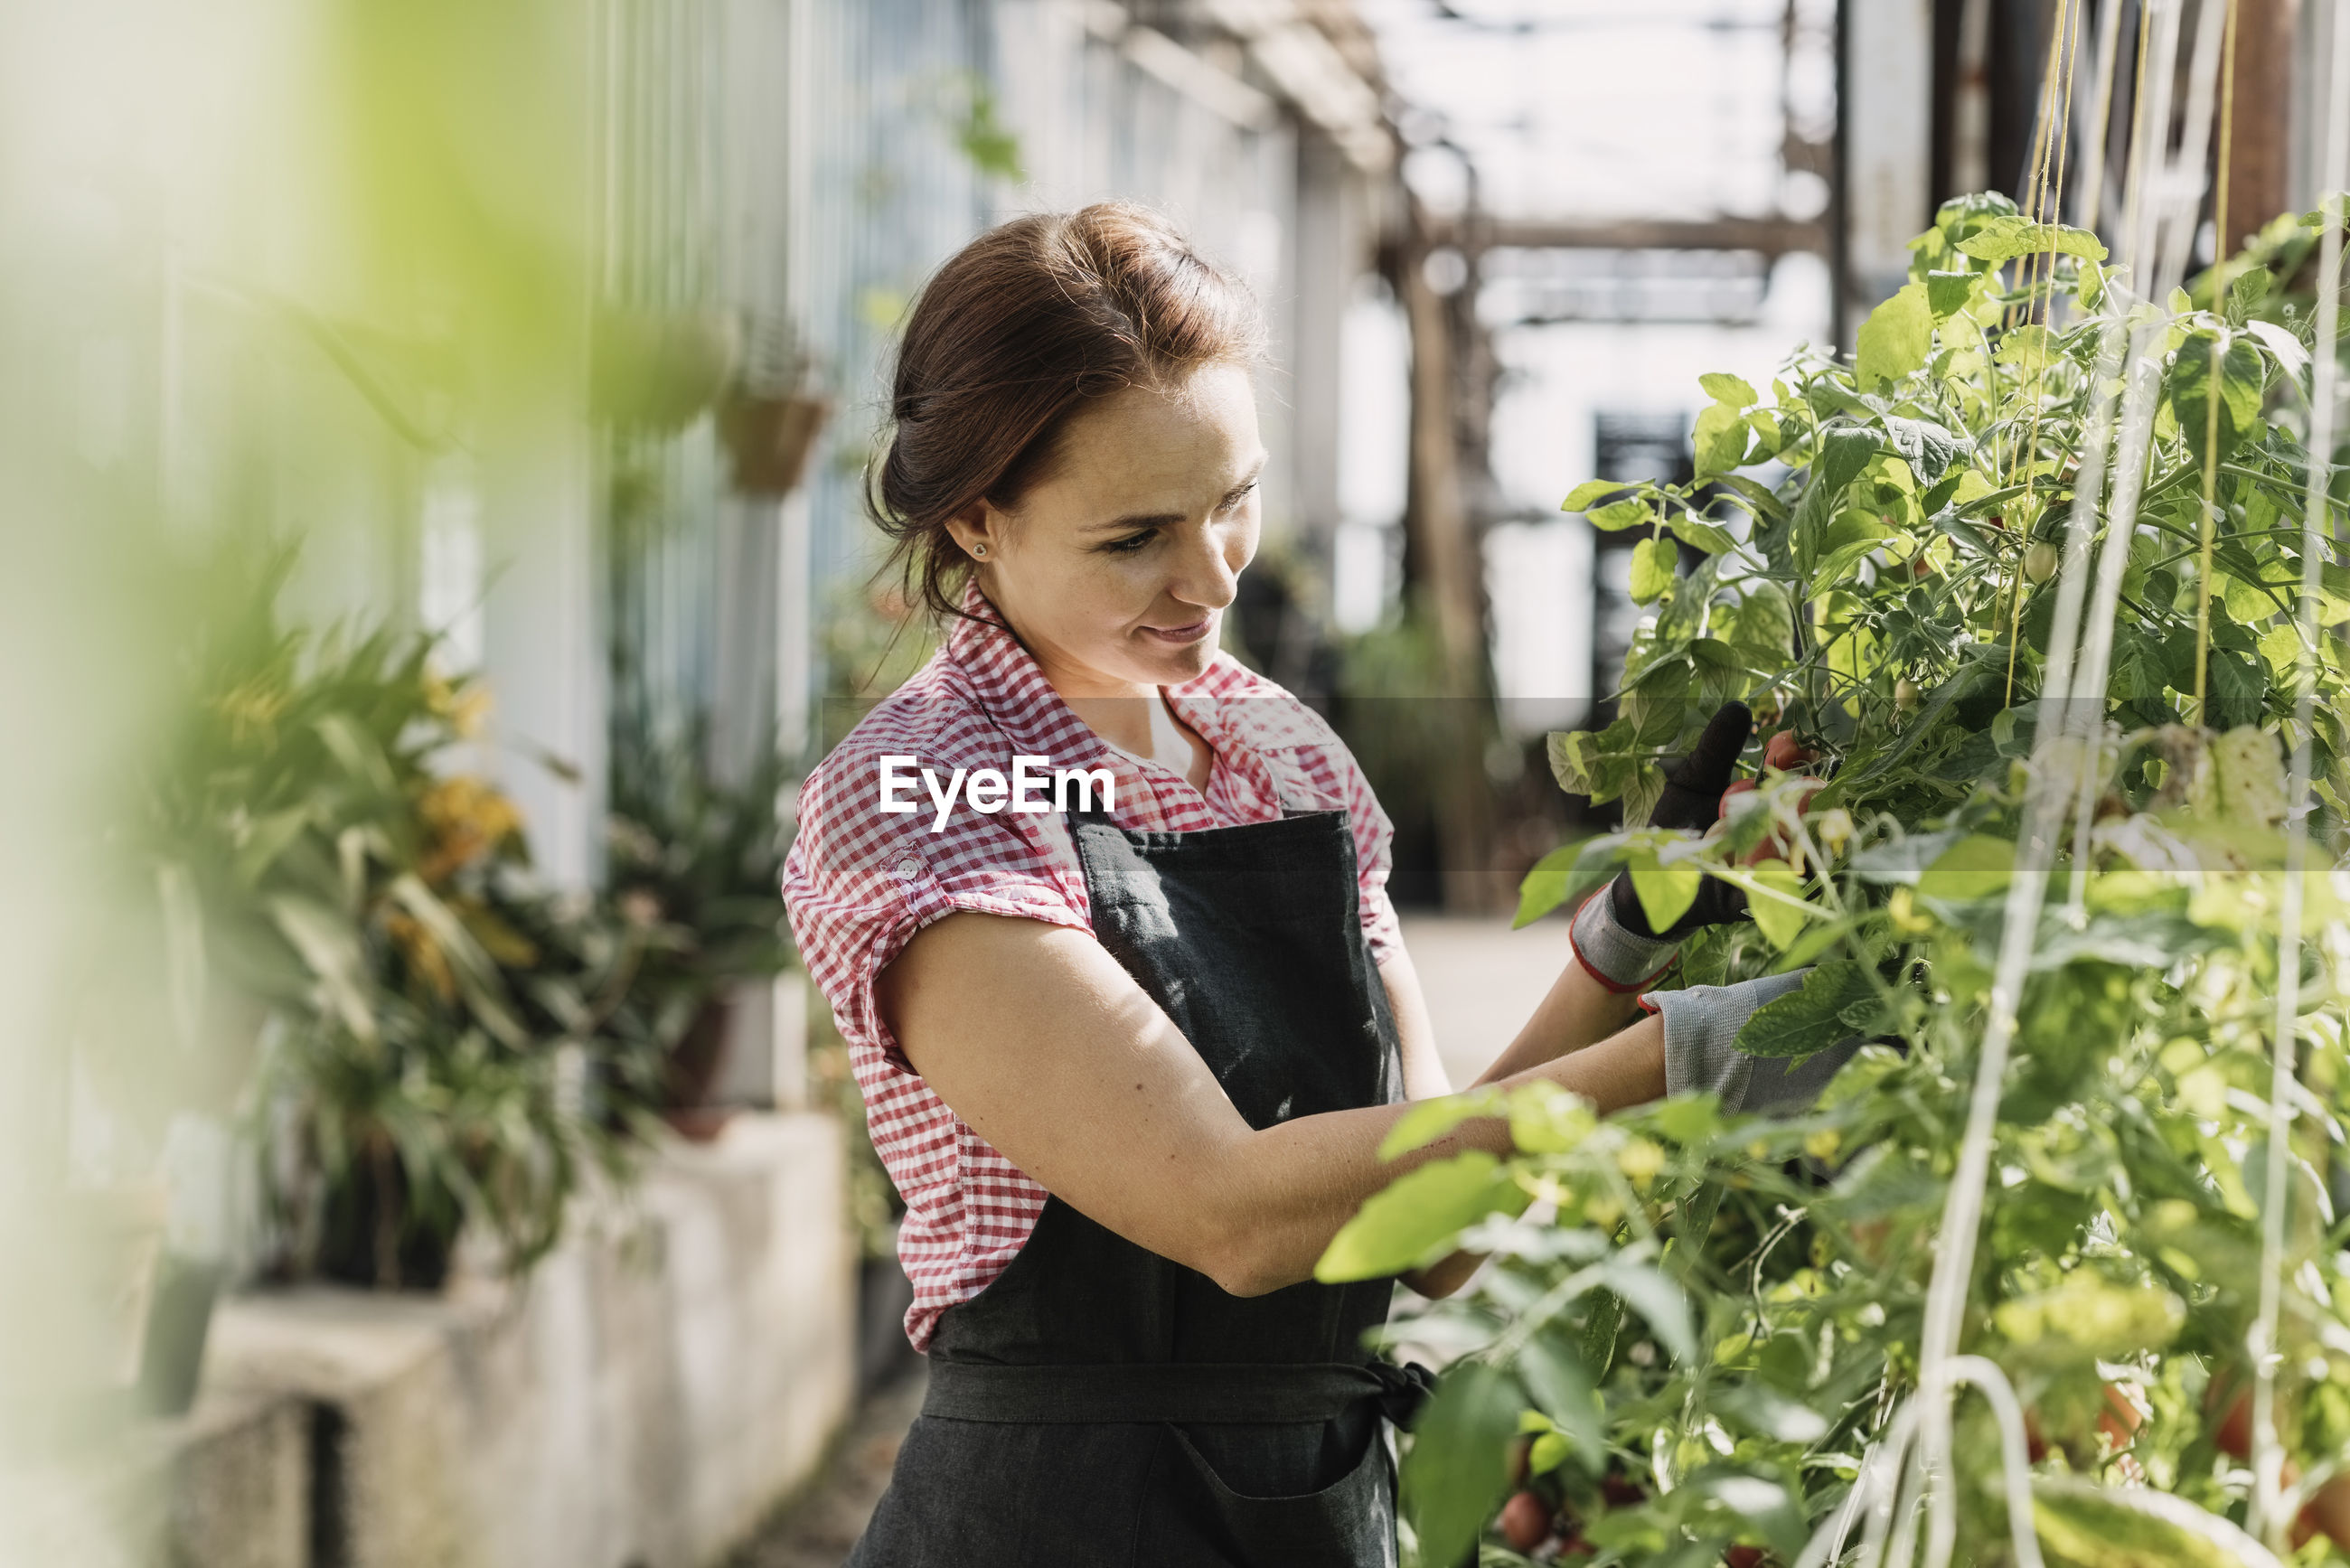 Female gardener working on potted plants in greenhouse